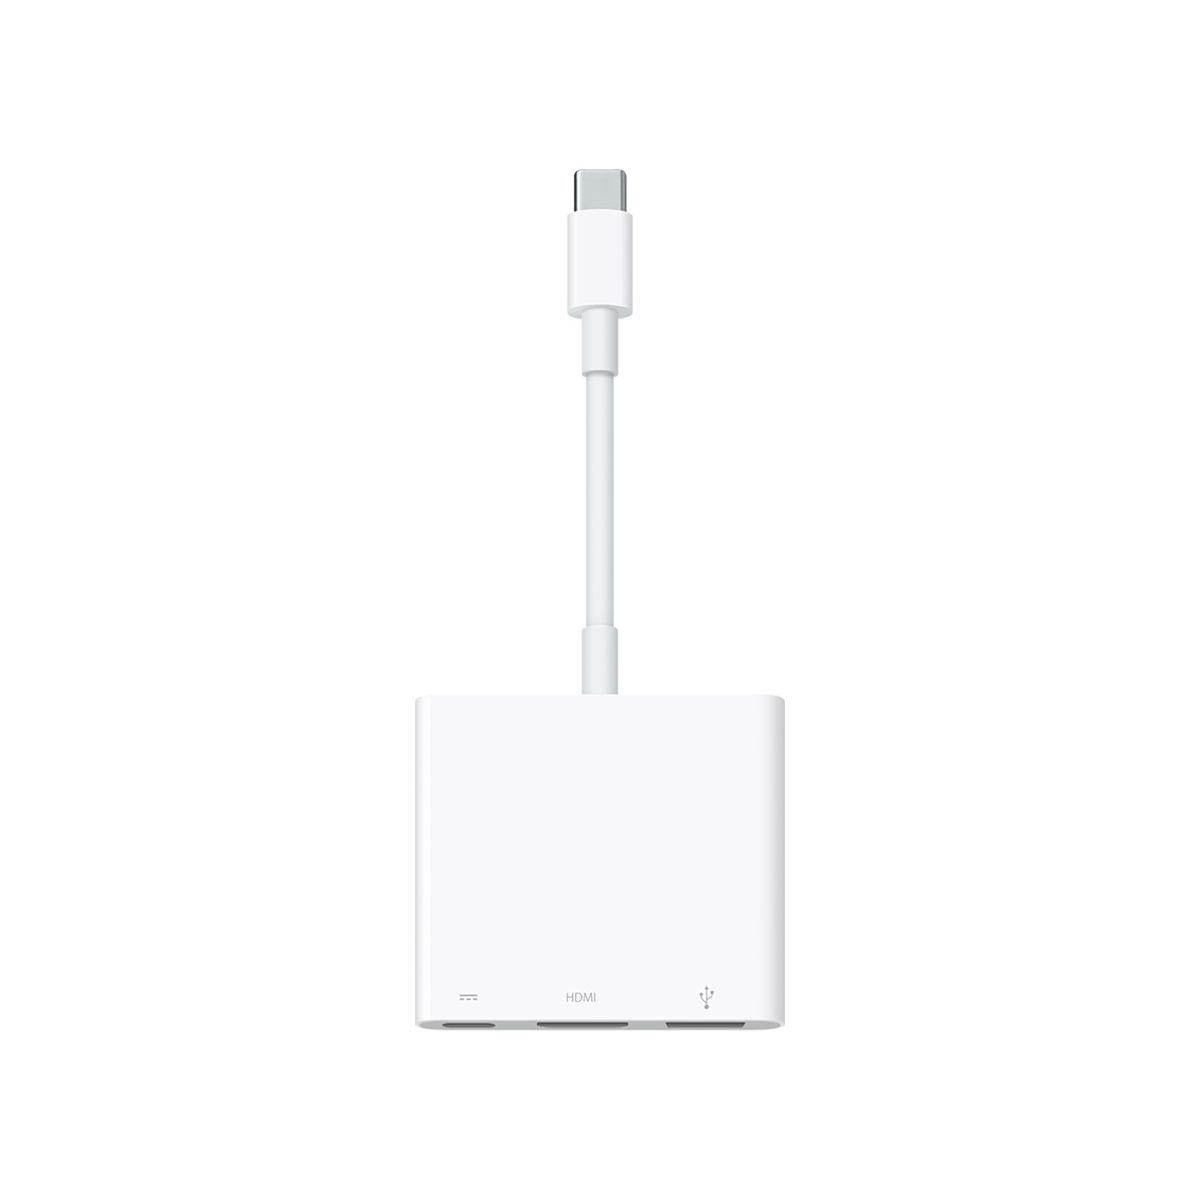 Adaptateur apple usb-c digital av multiport - livraison offerte : code liv (photo)